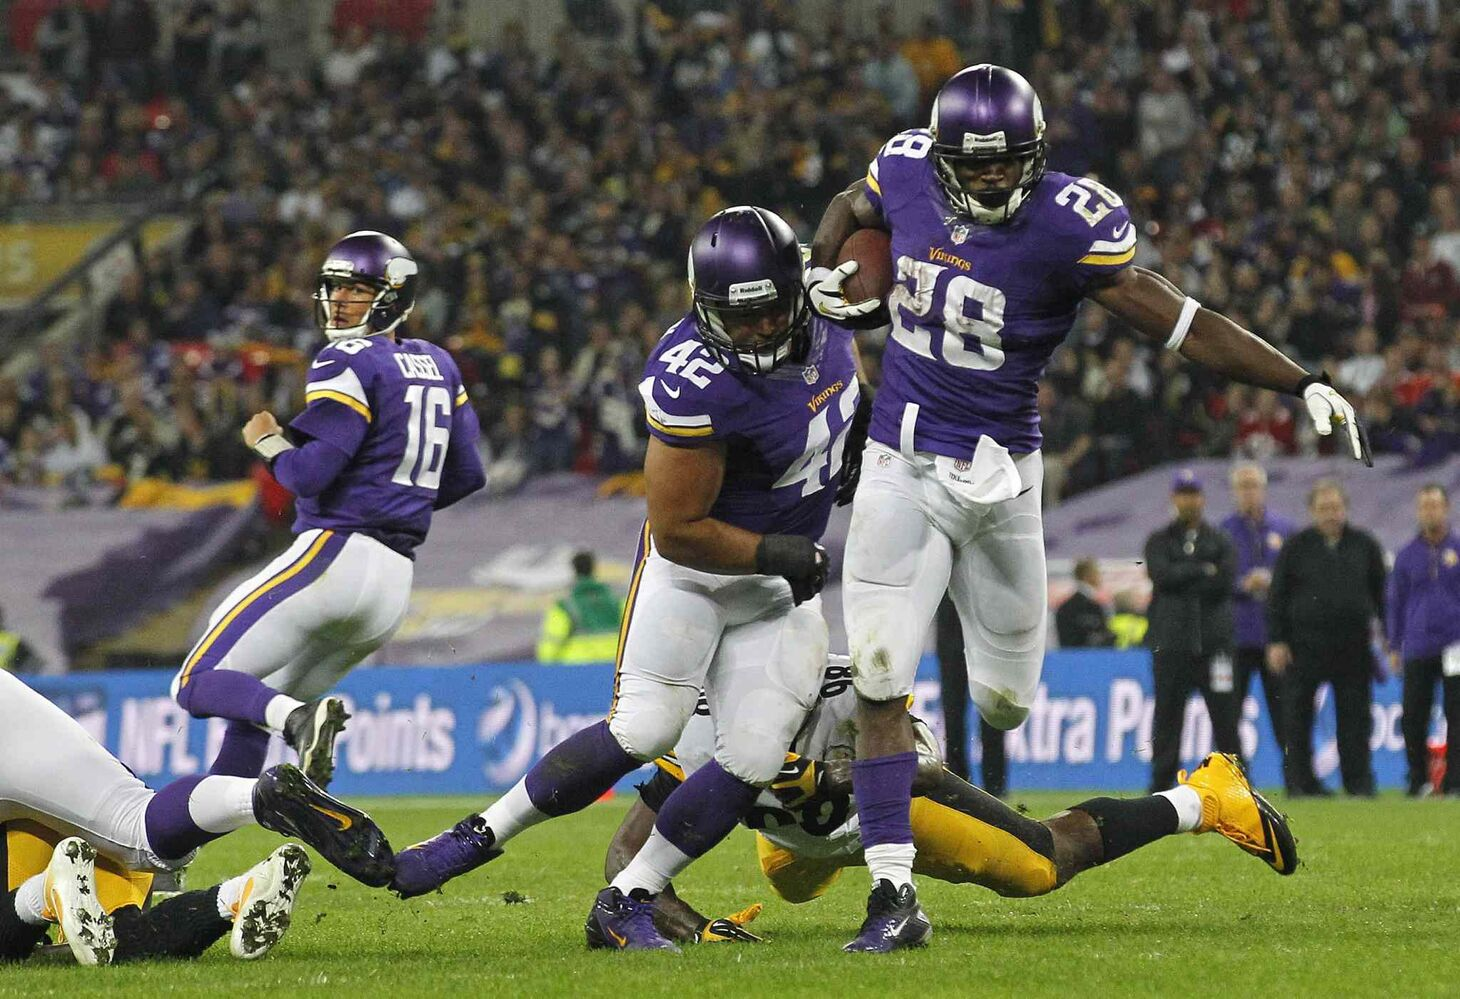 Minnesota Vikings quarterback Matt Cassel (left), watches as running back Adrian Peterson (right) rushes down field during the Vikes' 34-27 win over the Pittsburgh Steelers at Wembley Stadium in London on Sunday.